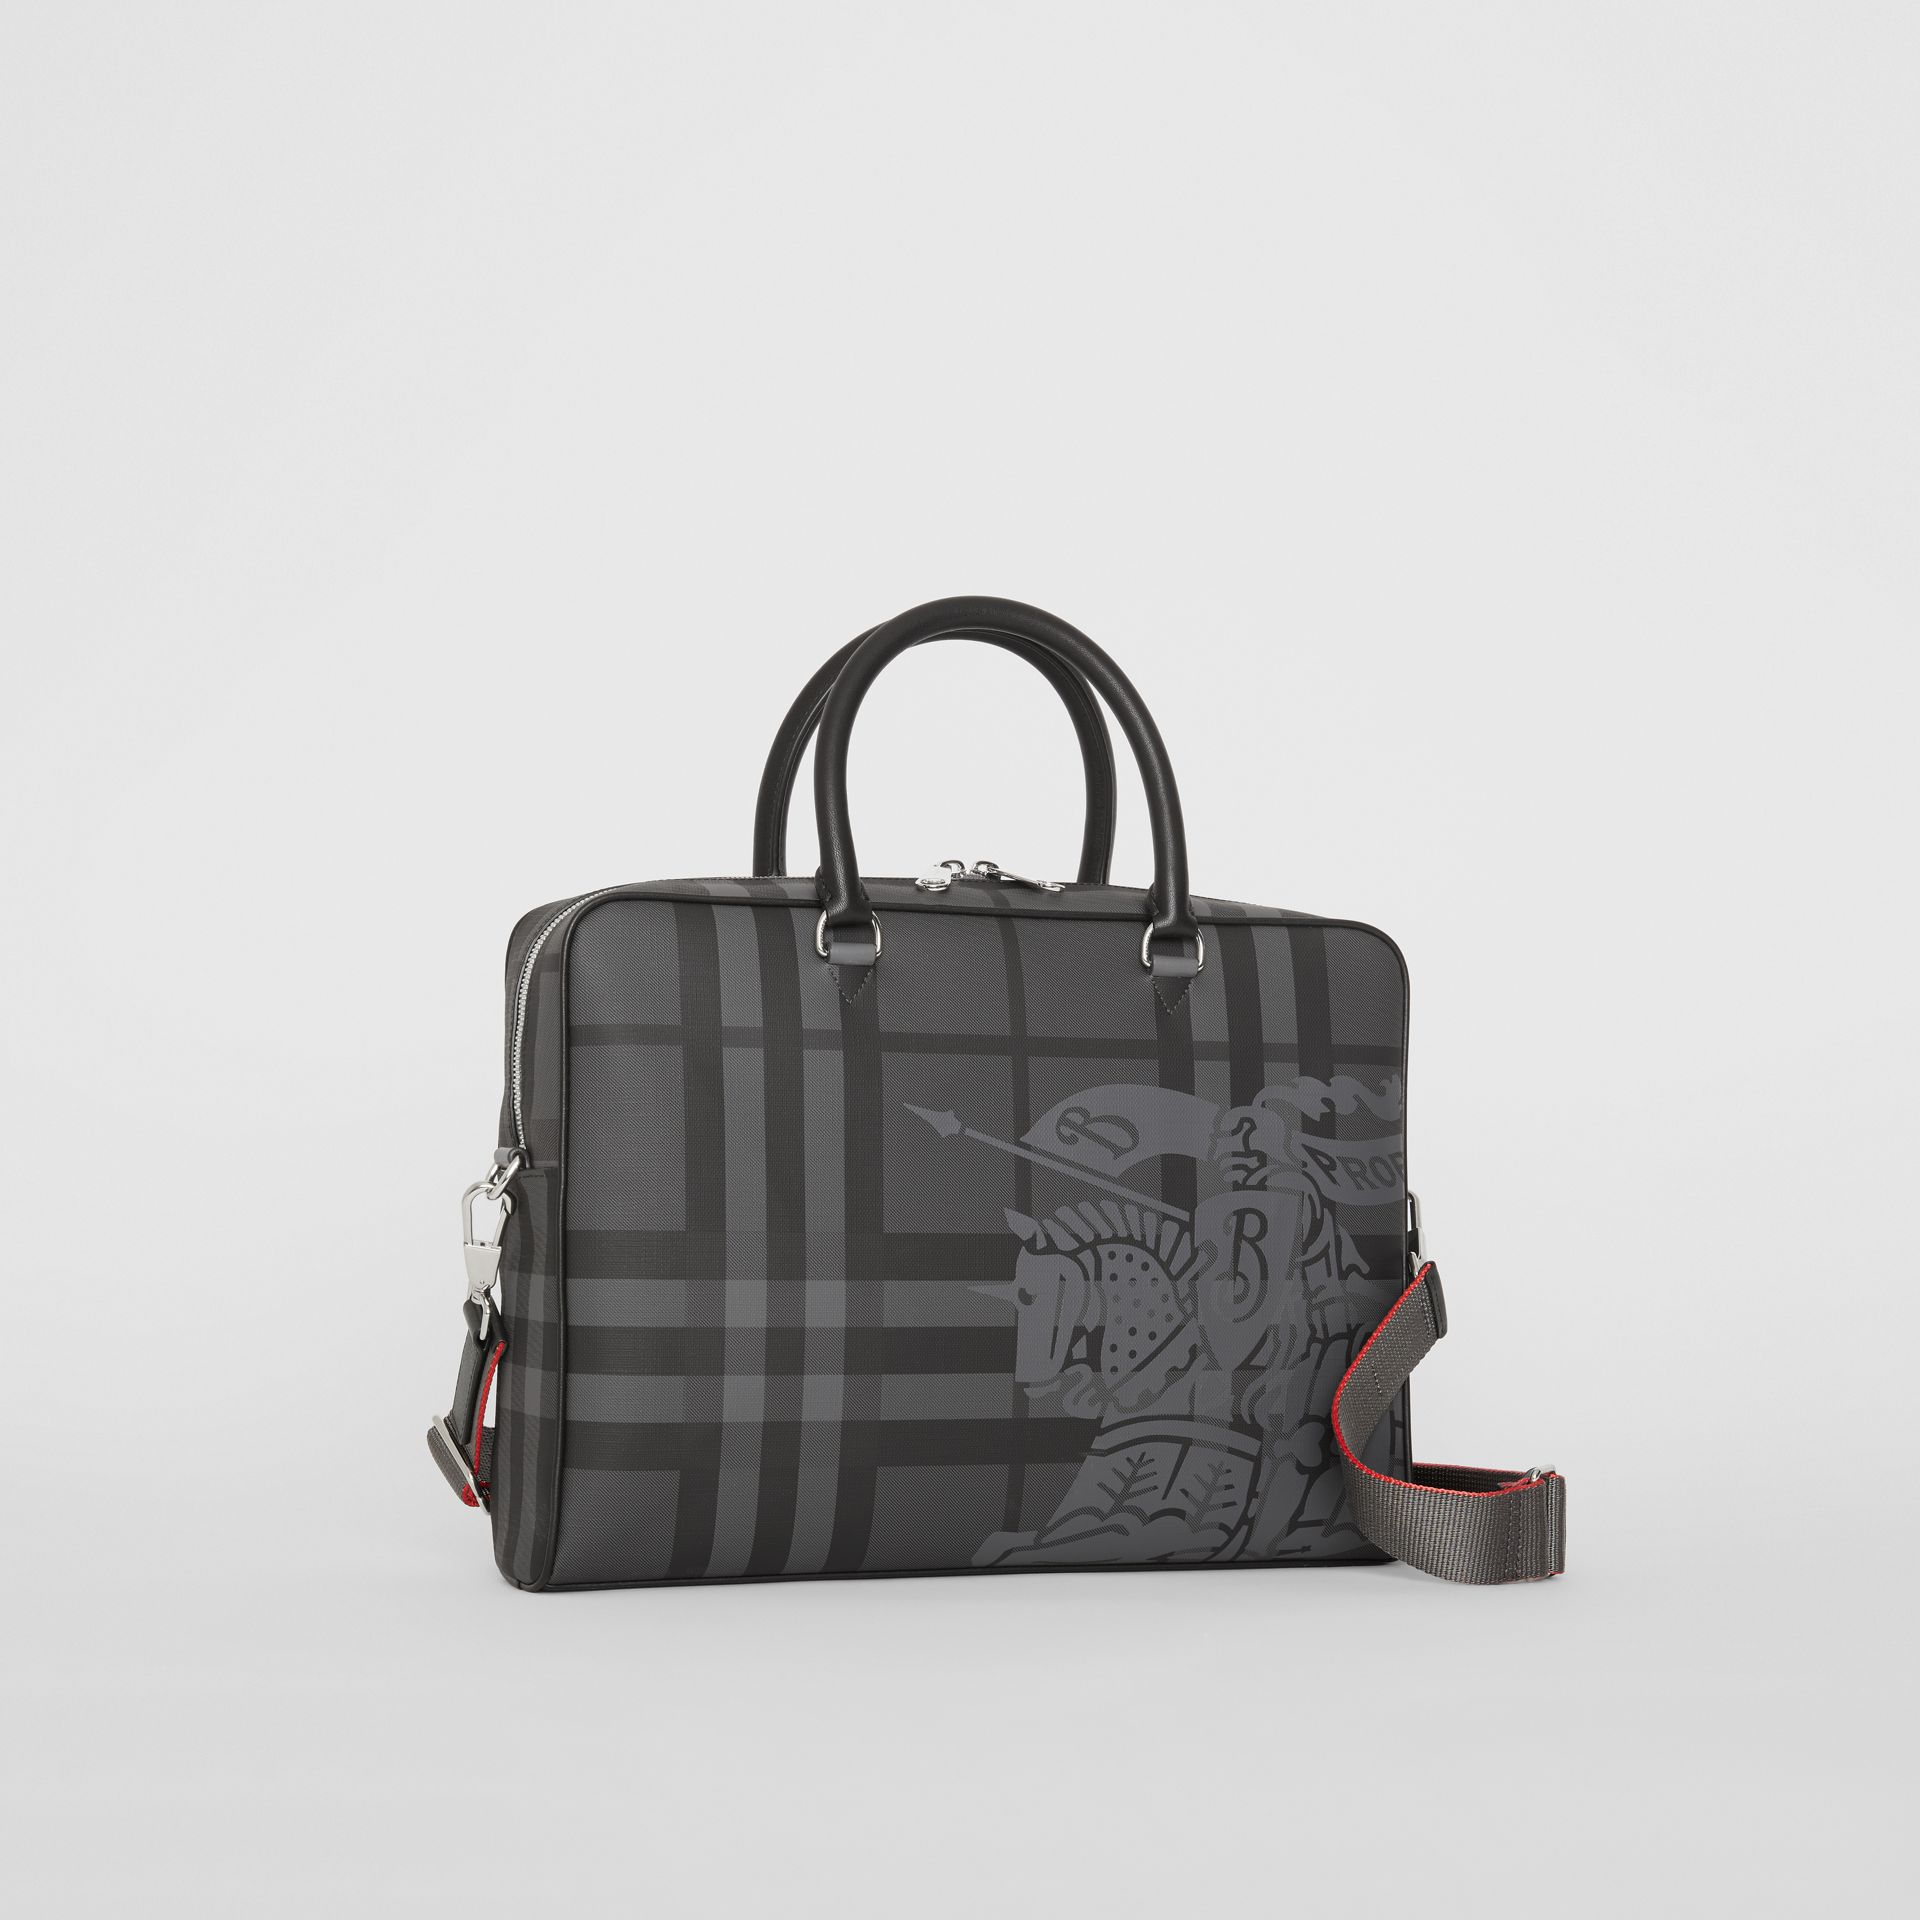 EKD London Check and Leather Briefcase in Charcoal/black - Men | Burberry - gallery image 6